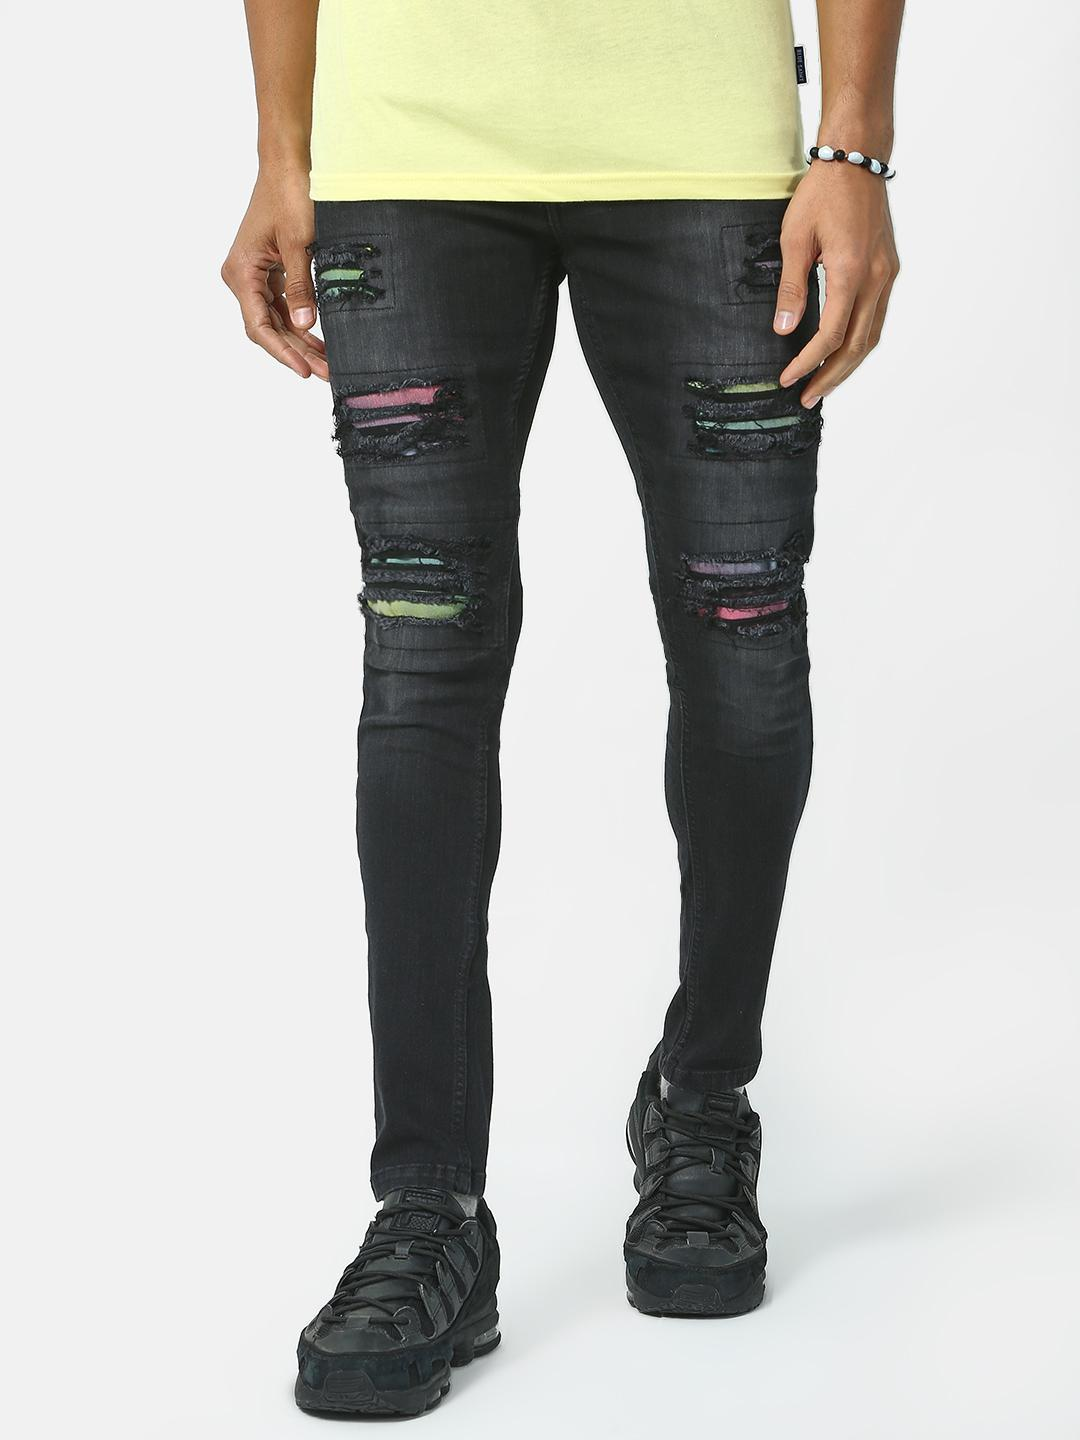 IMPACKT Black Ripped Distressed Jeans 1